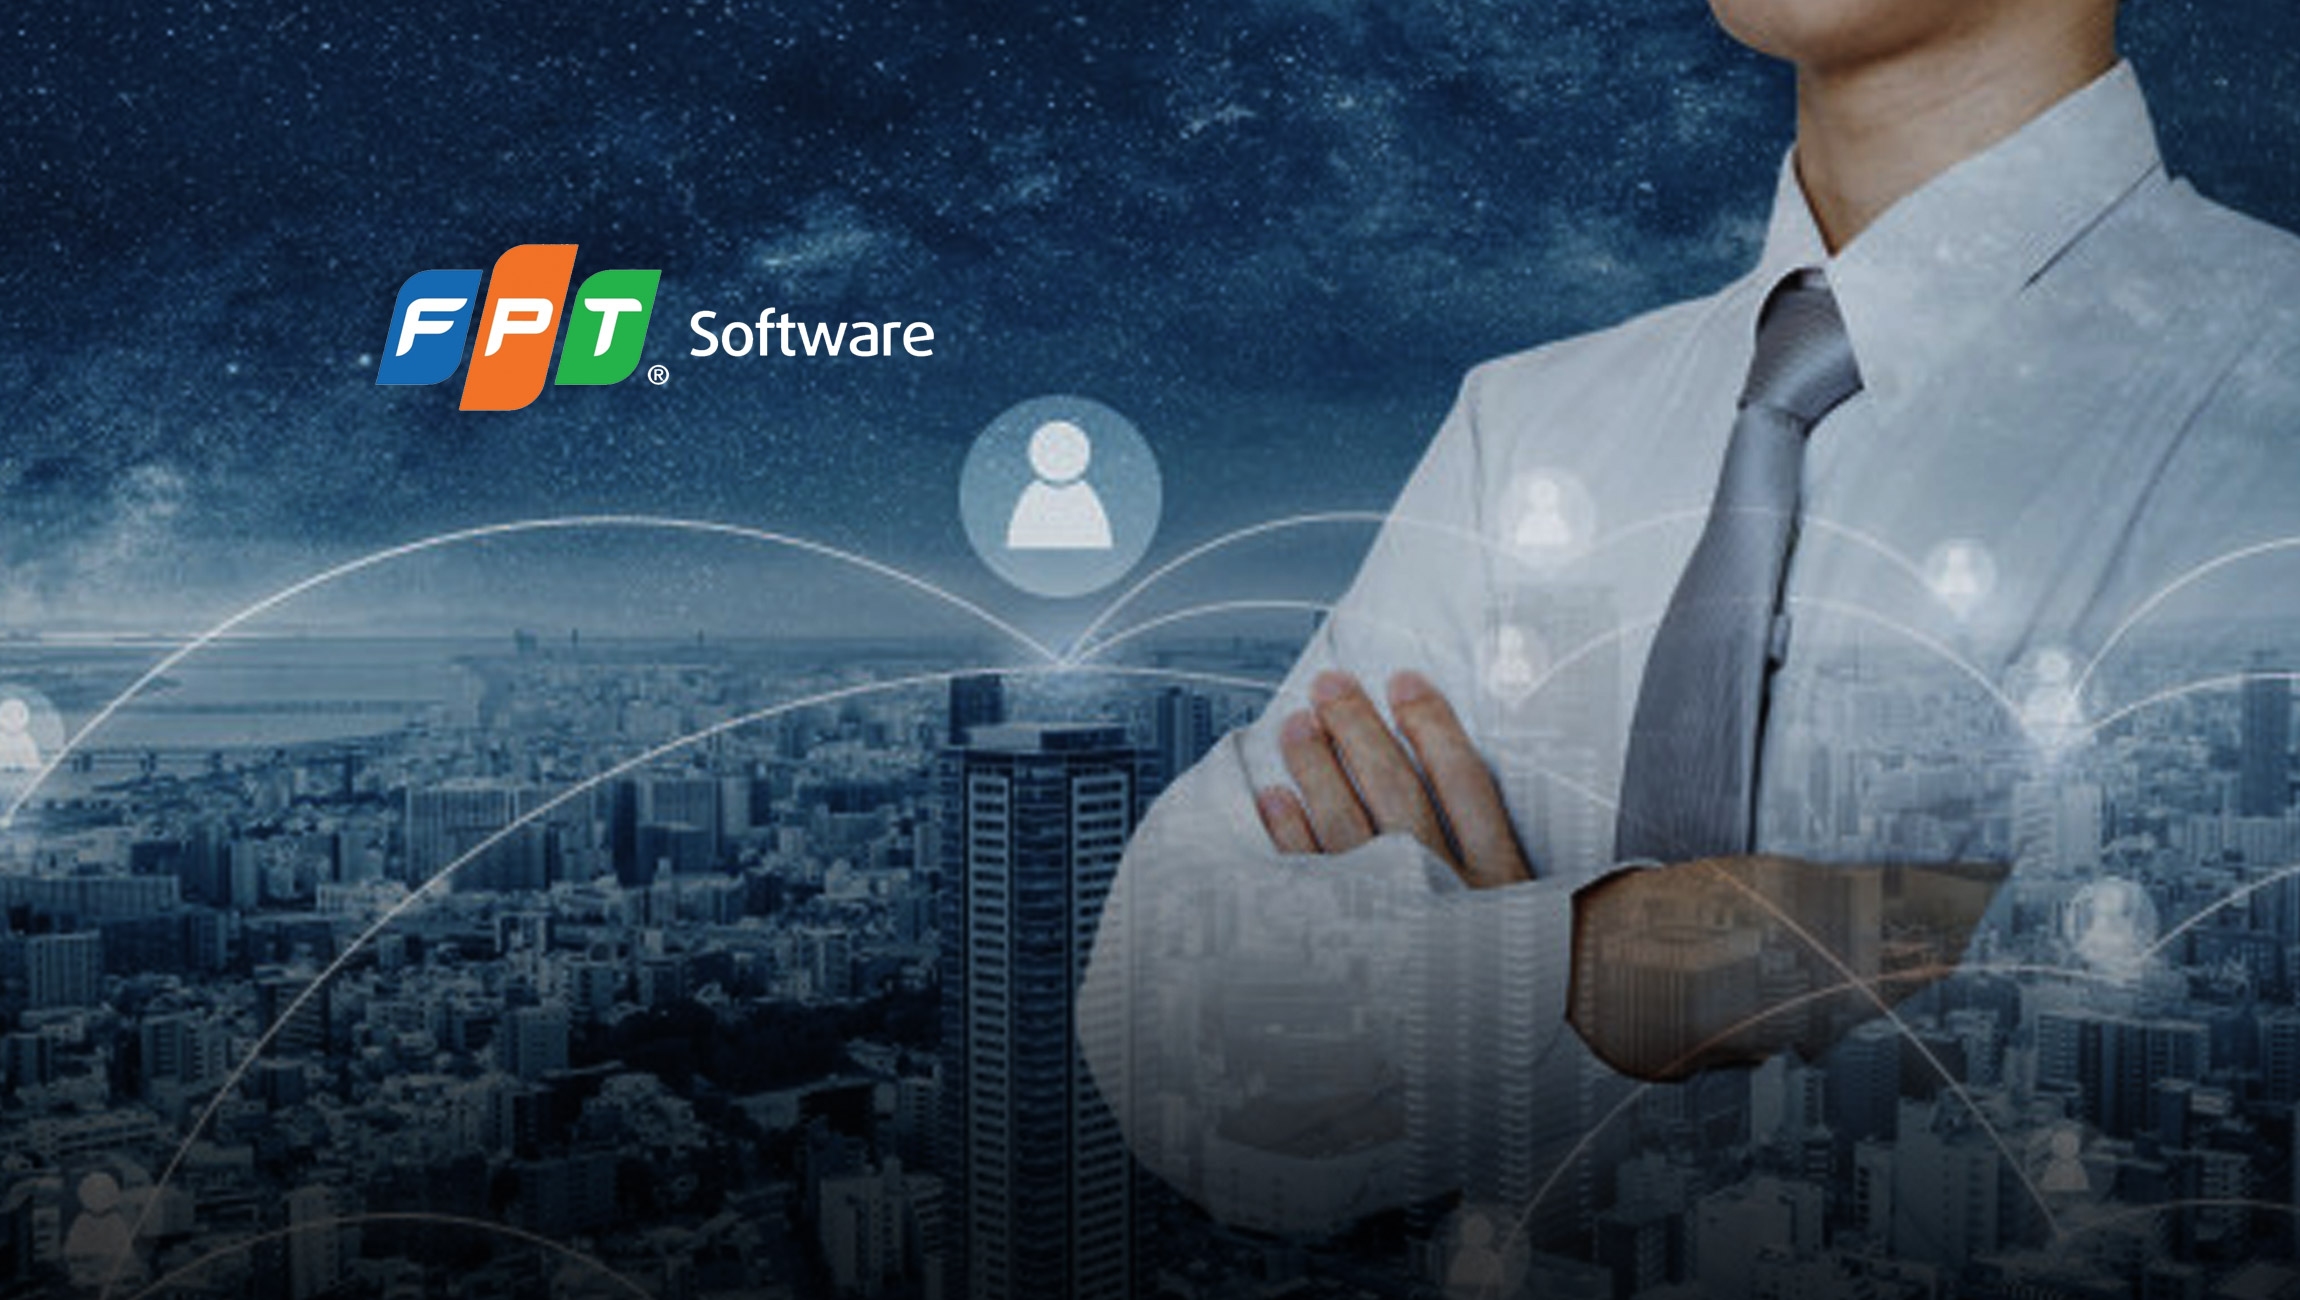 FPT Helps Businesses Automate During COVID-19 With RPA Offers